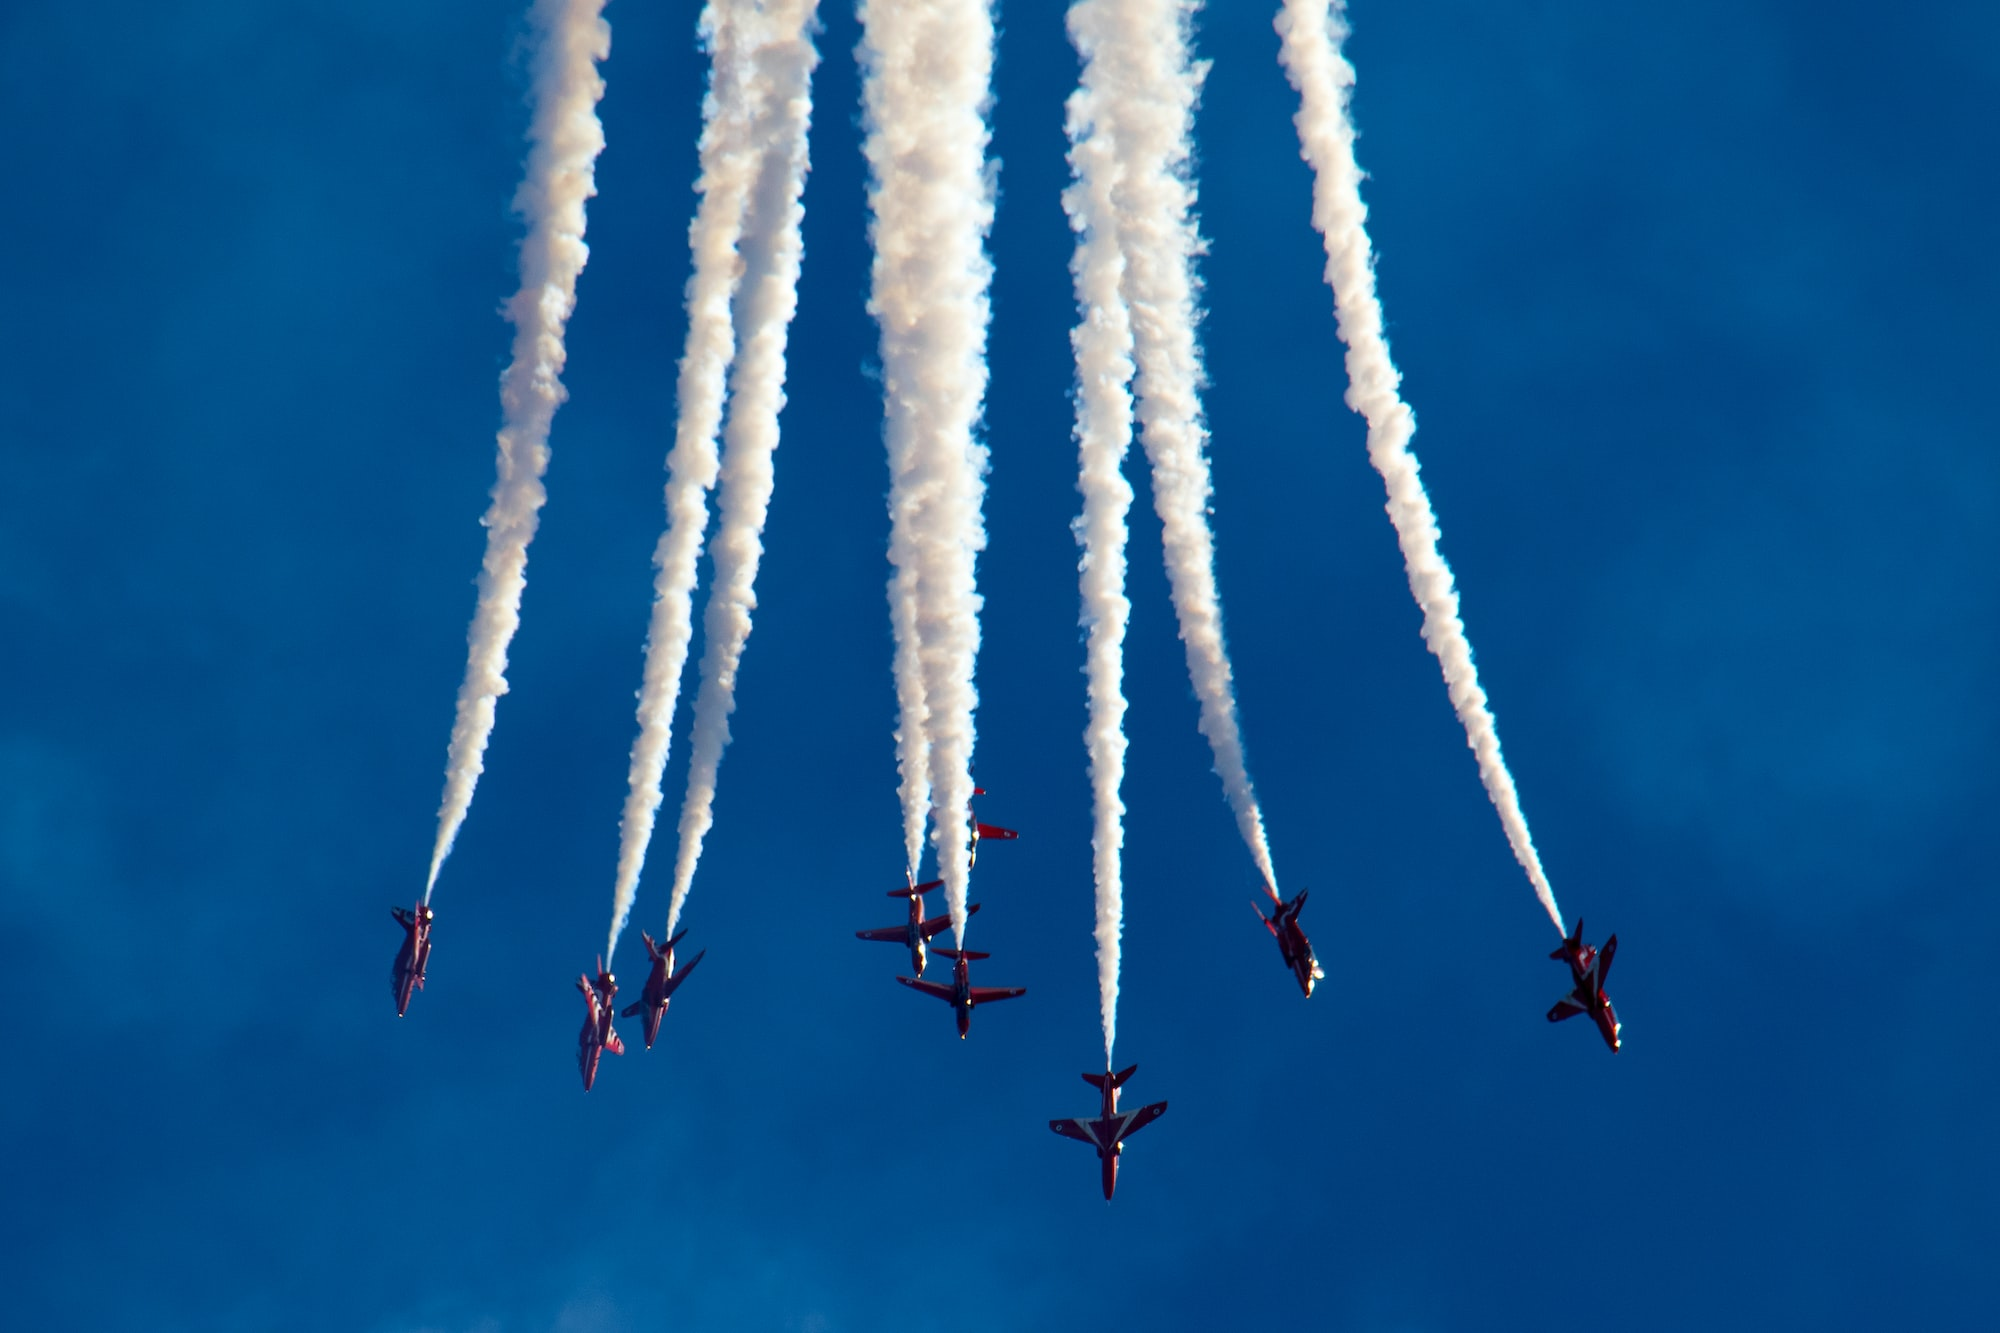 The RAF Red Arrows complete an annual display at the 3-day Bournemouth Airshow.  Often, travelling at over 400mph and at a distance of 6ft from each other, the team is recognised as one of, if not, the best air display team in the world.